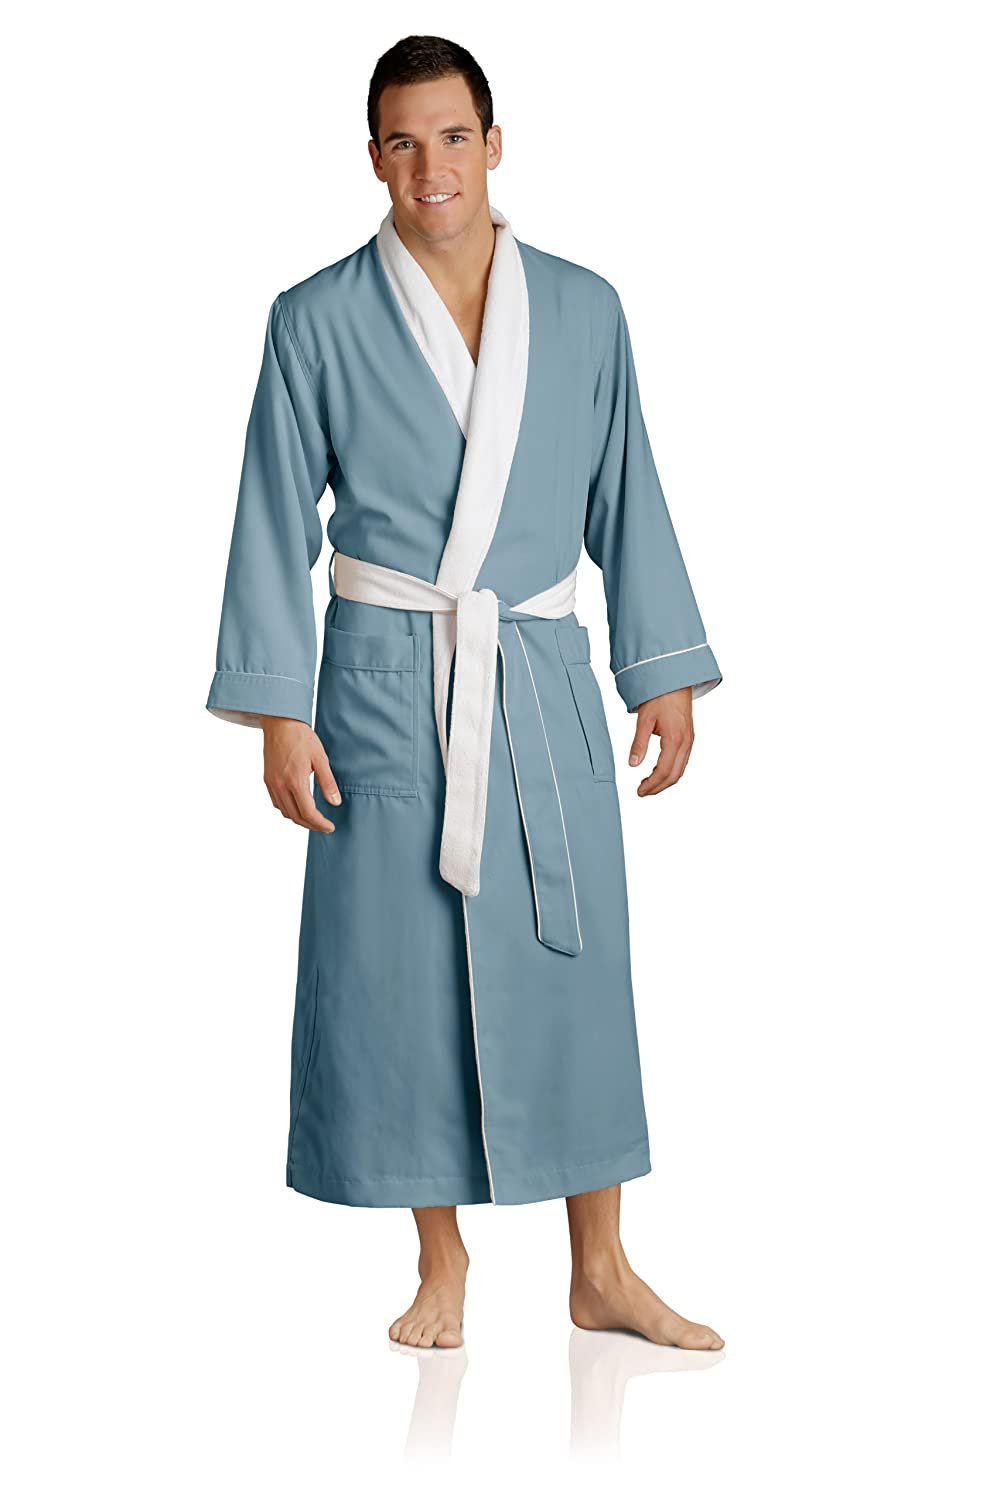 Luxury Spa Robe - Microfiber with Cotton Terry Lining at Amazon ...